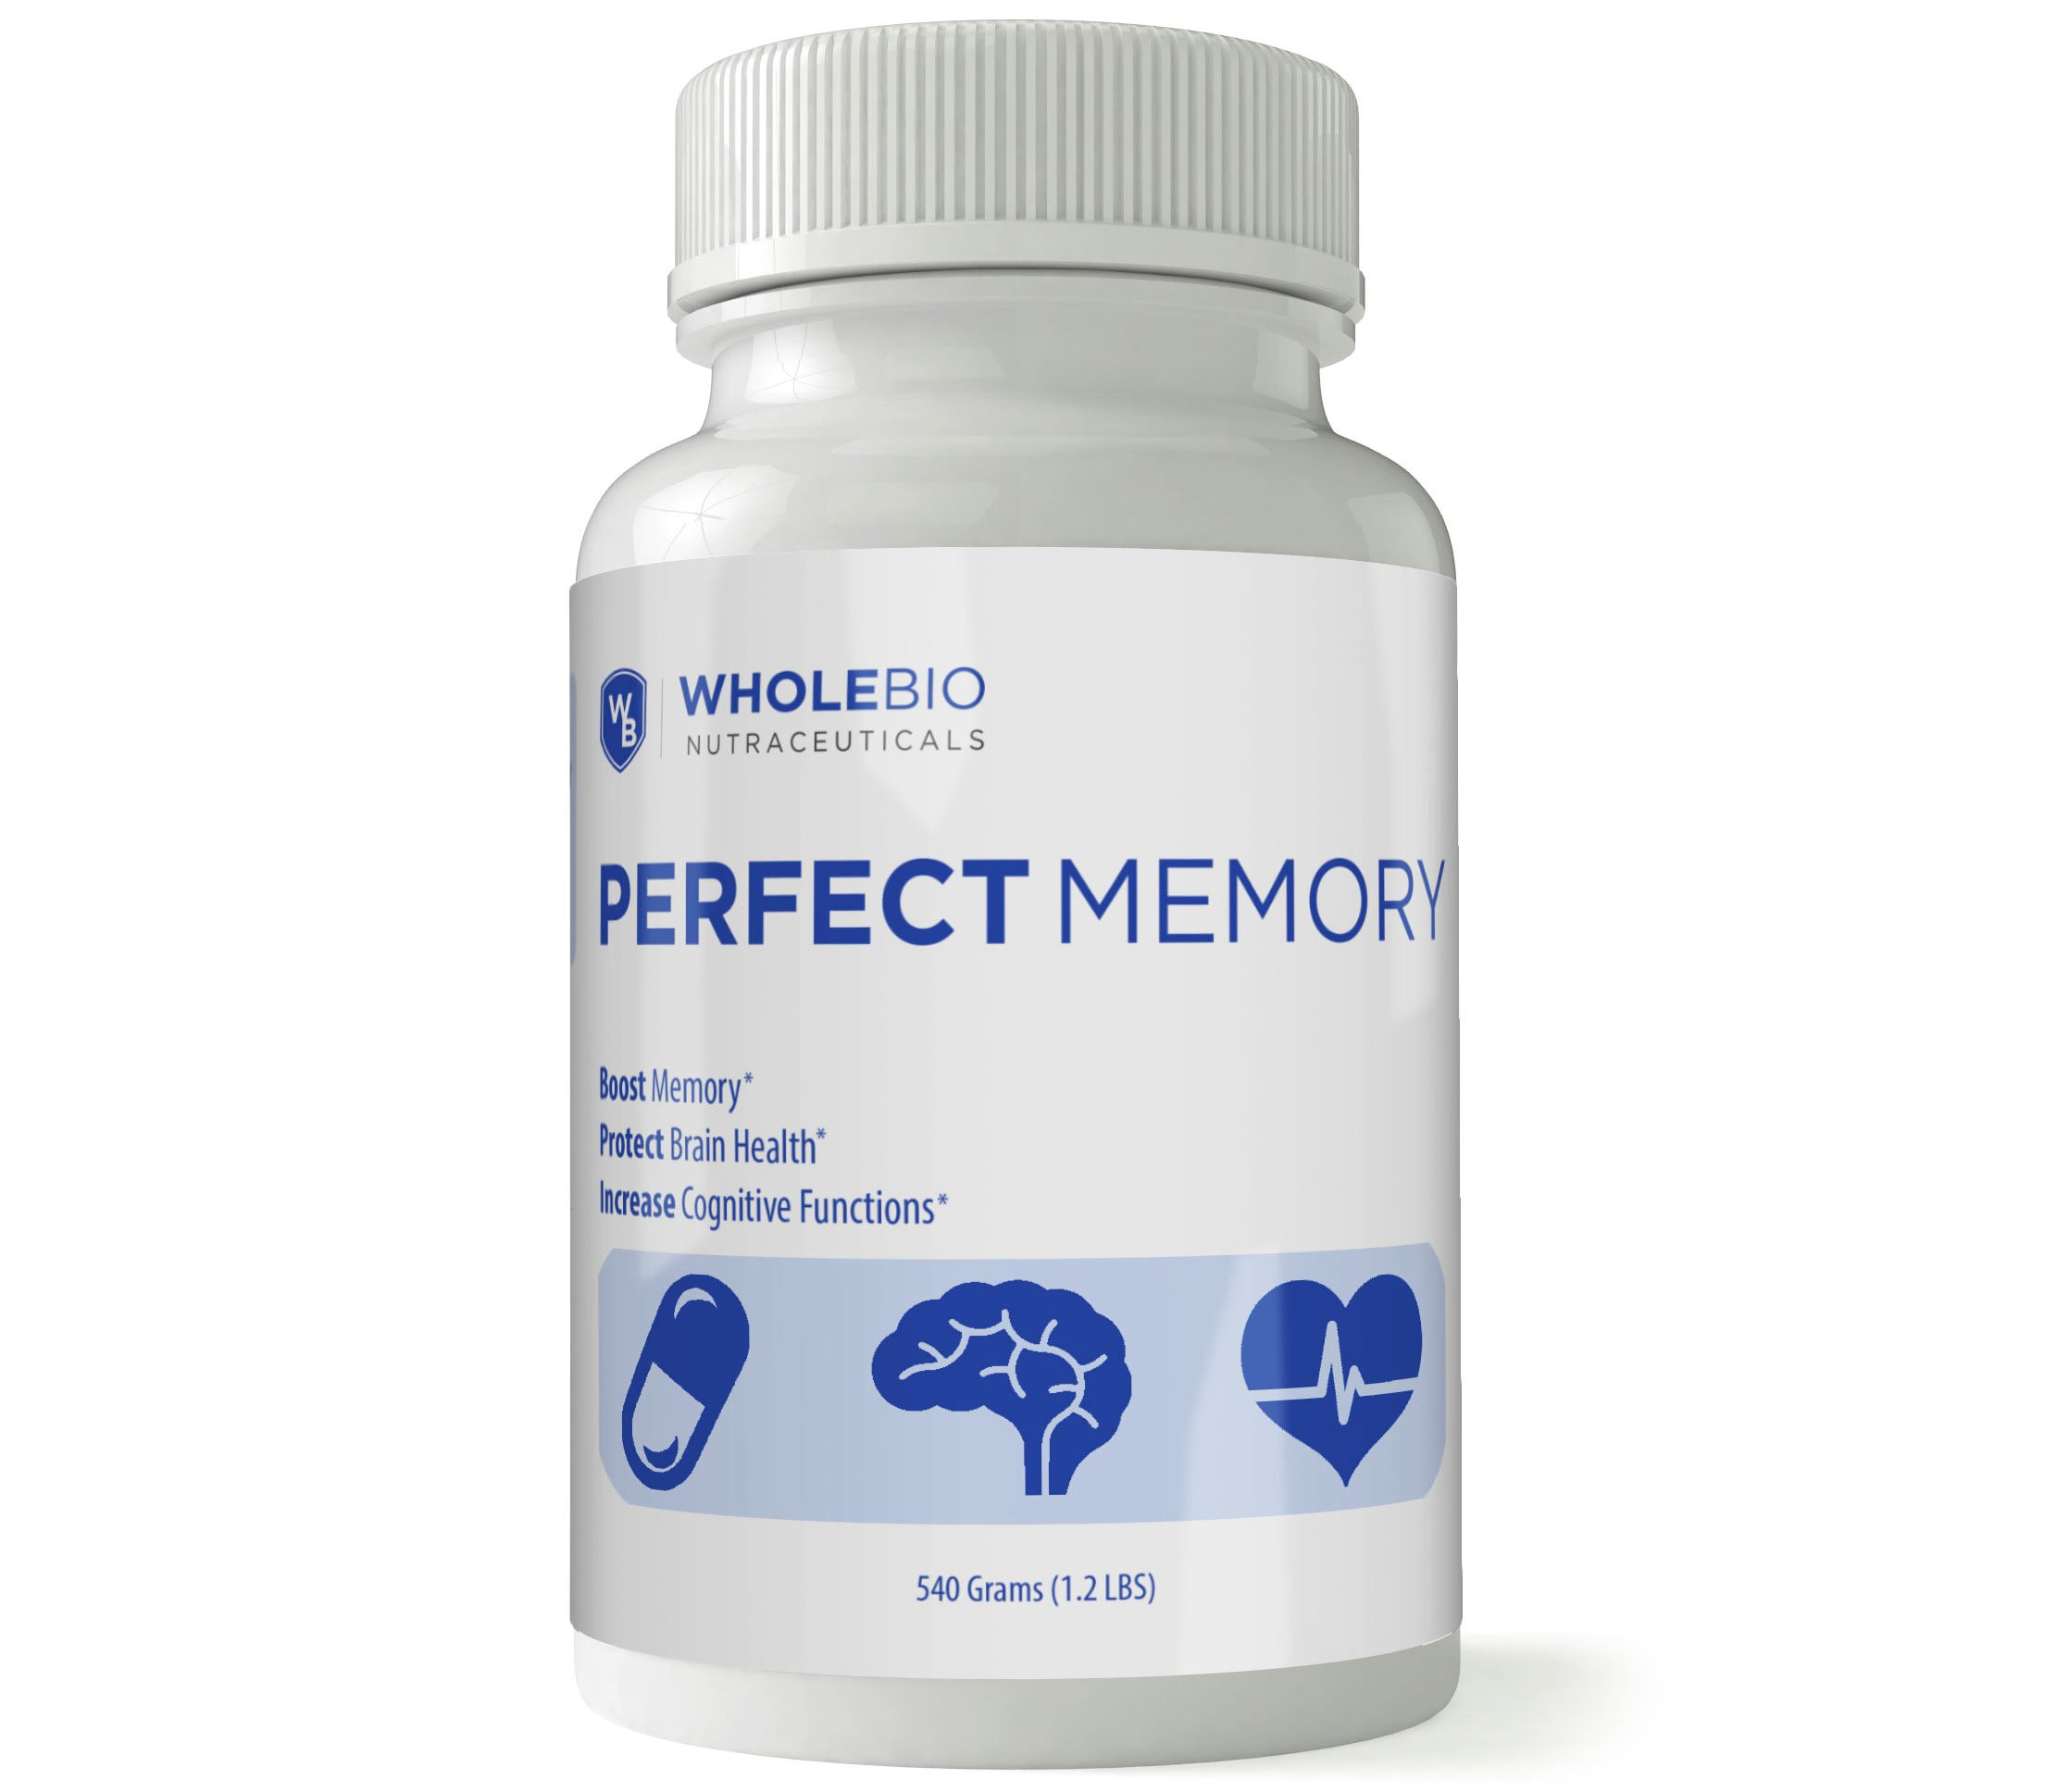 Best Brain & Memory Vitamin - US Patent Protected. Enhance Memory, Boost Brain Health. 120 Capsules per Bottle. 12 Ingredients (The Most of Any Memory Formula) - Perfect Memory by Perfect Memory